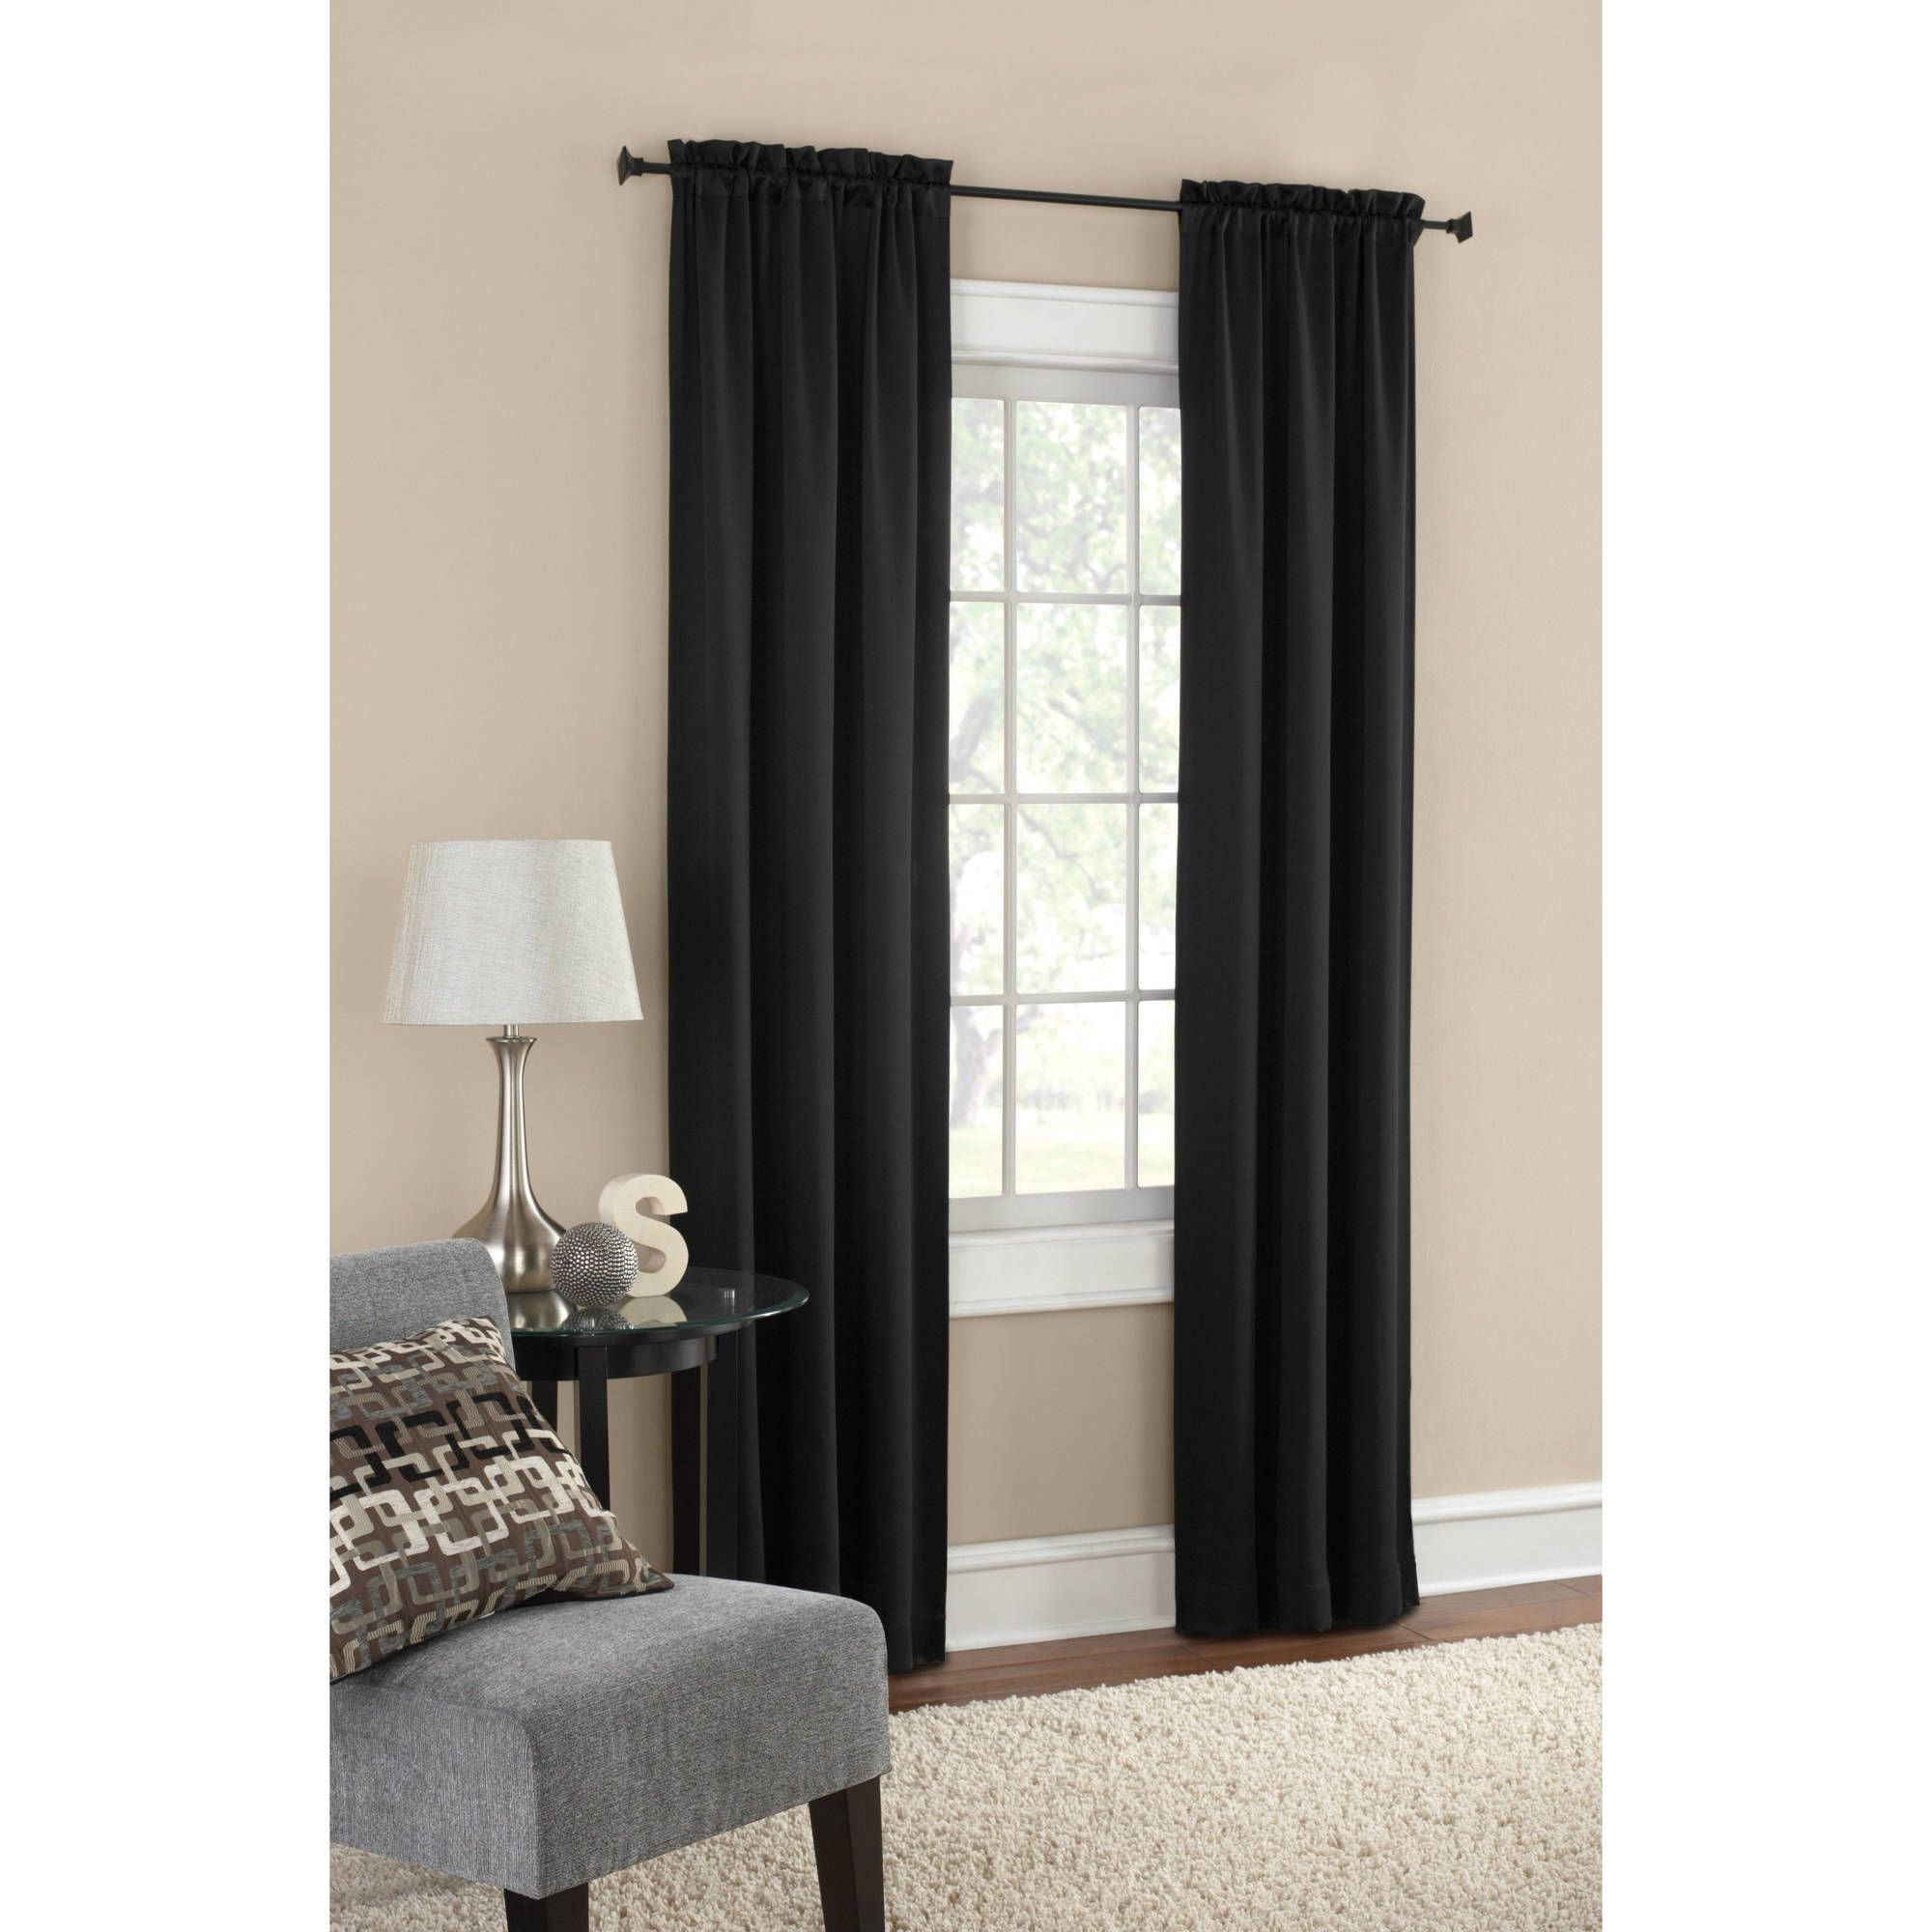 long window curtains realtagfo pinterest long